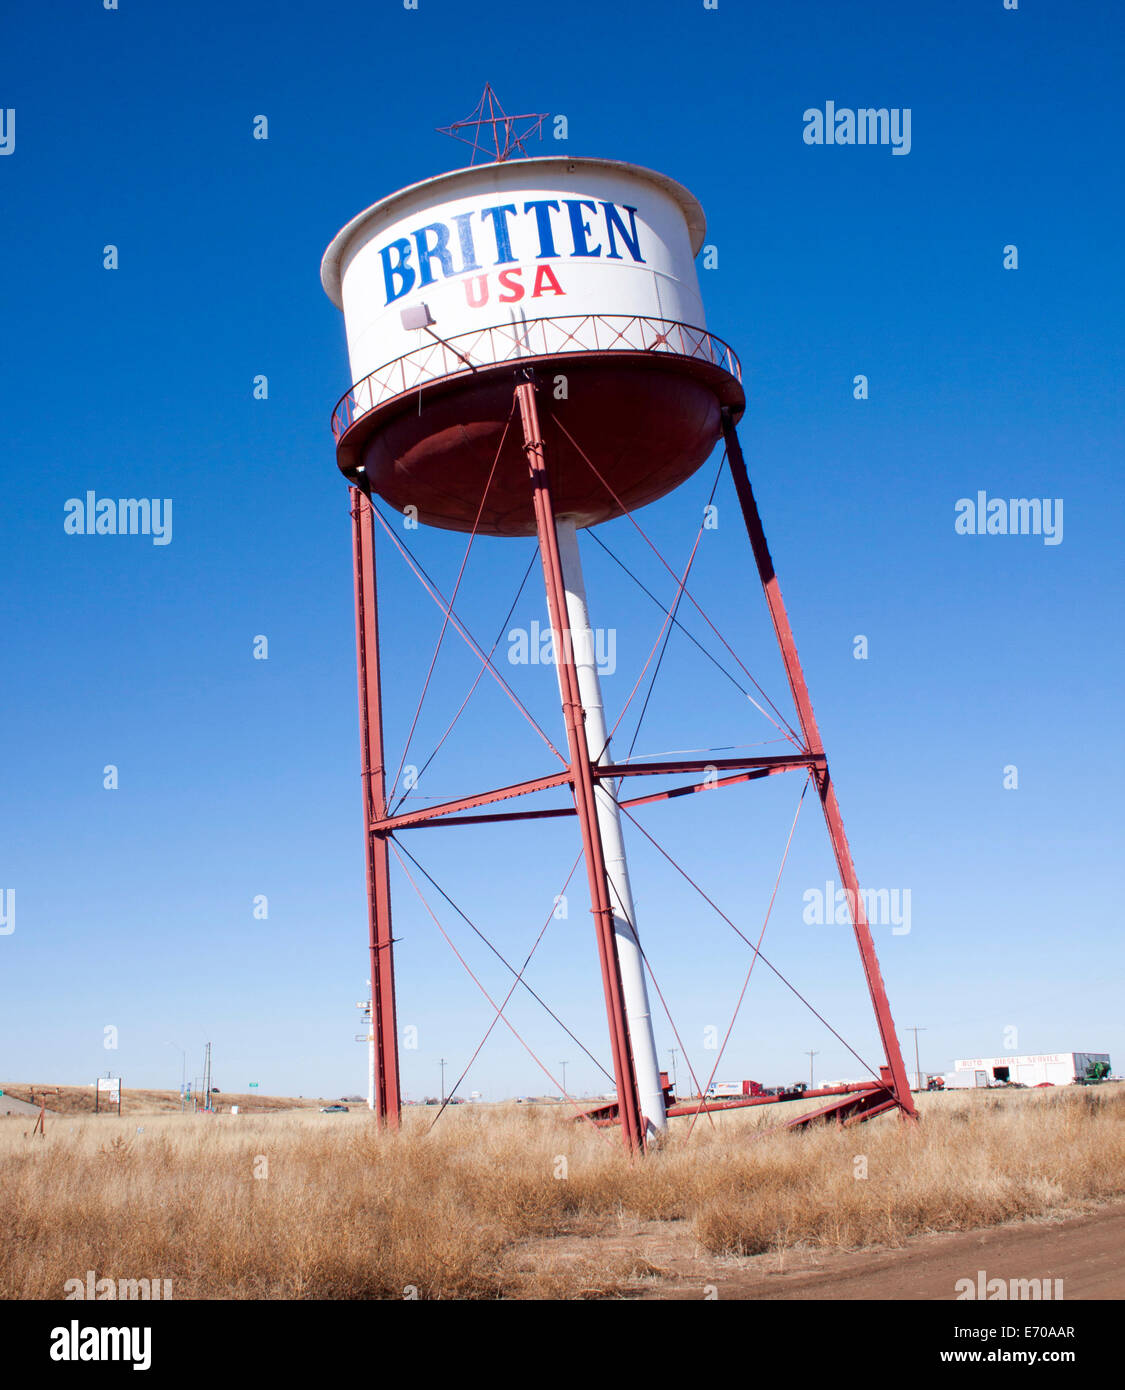 Britten Leaning Water Tower in Groom Texas - Stock Image